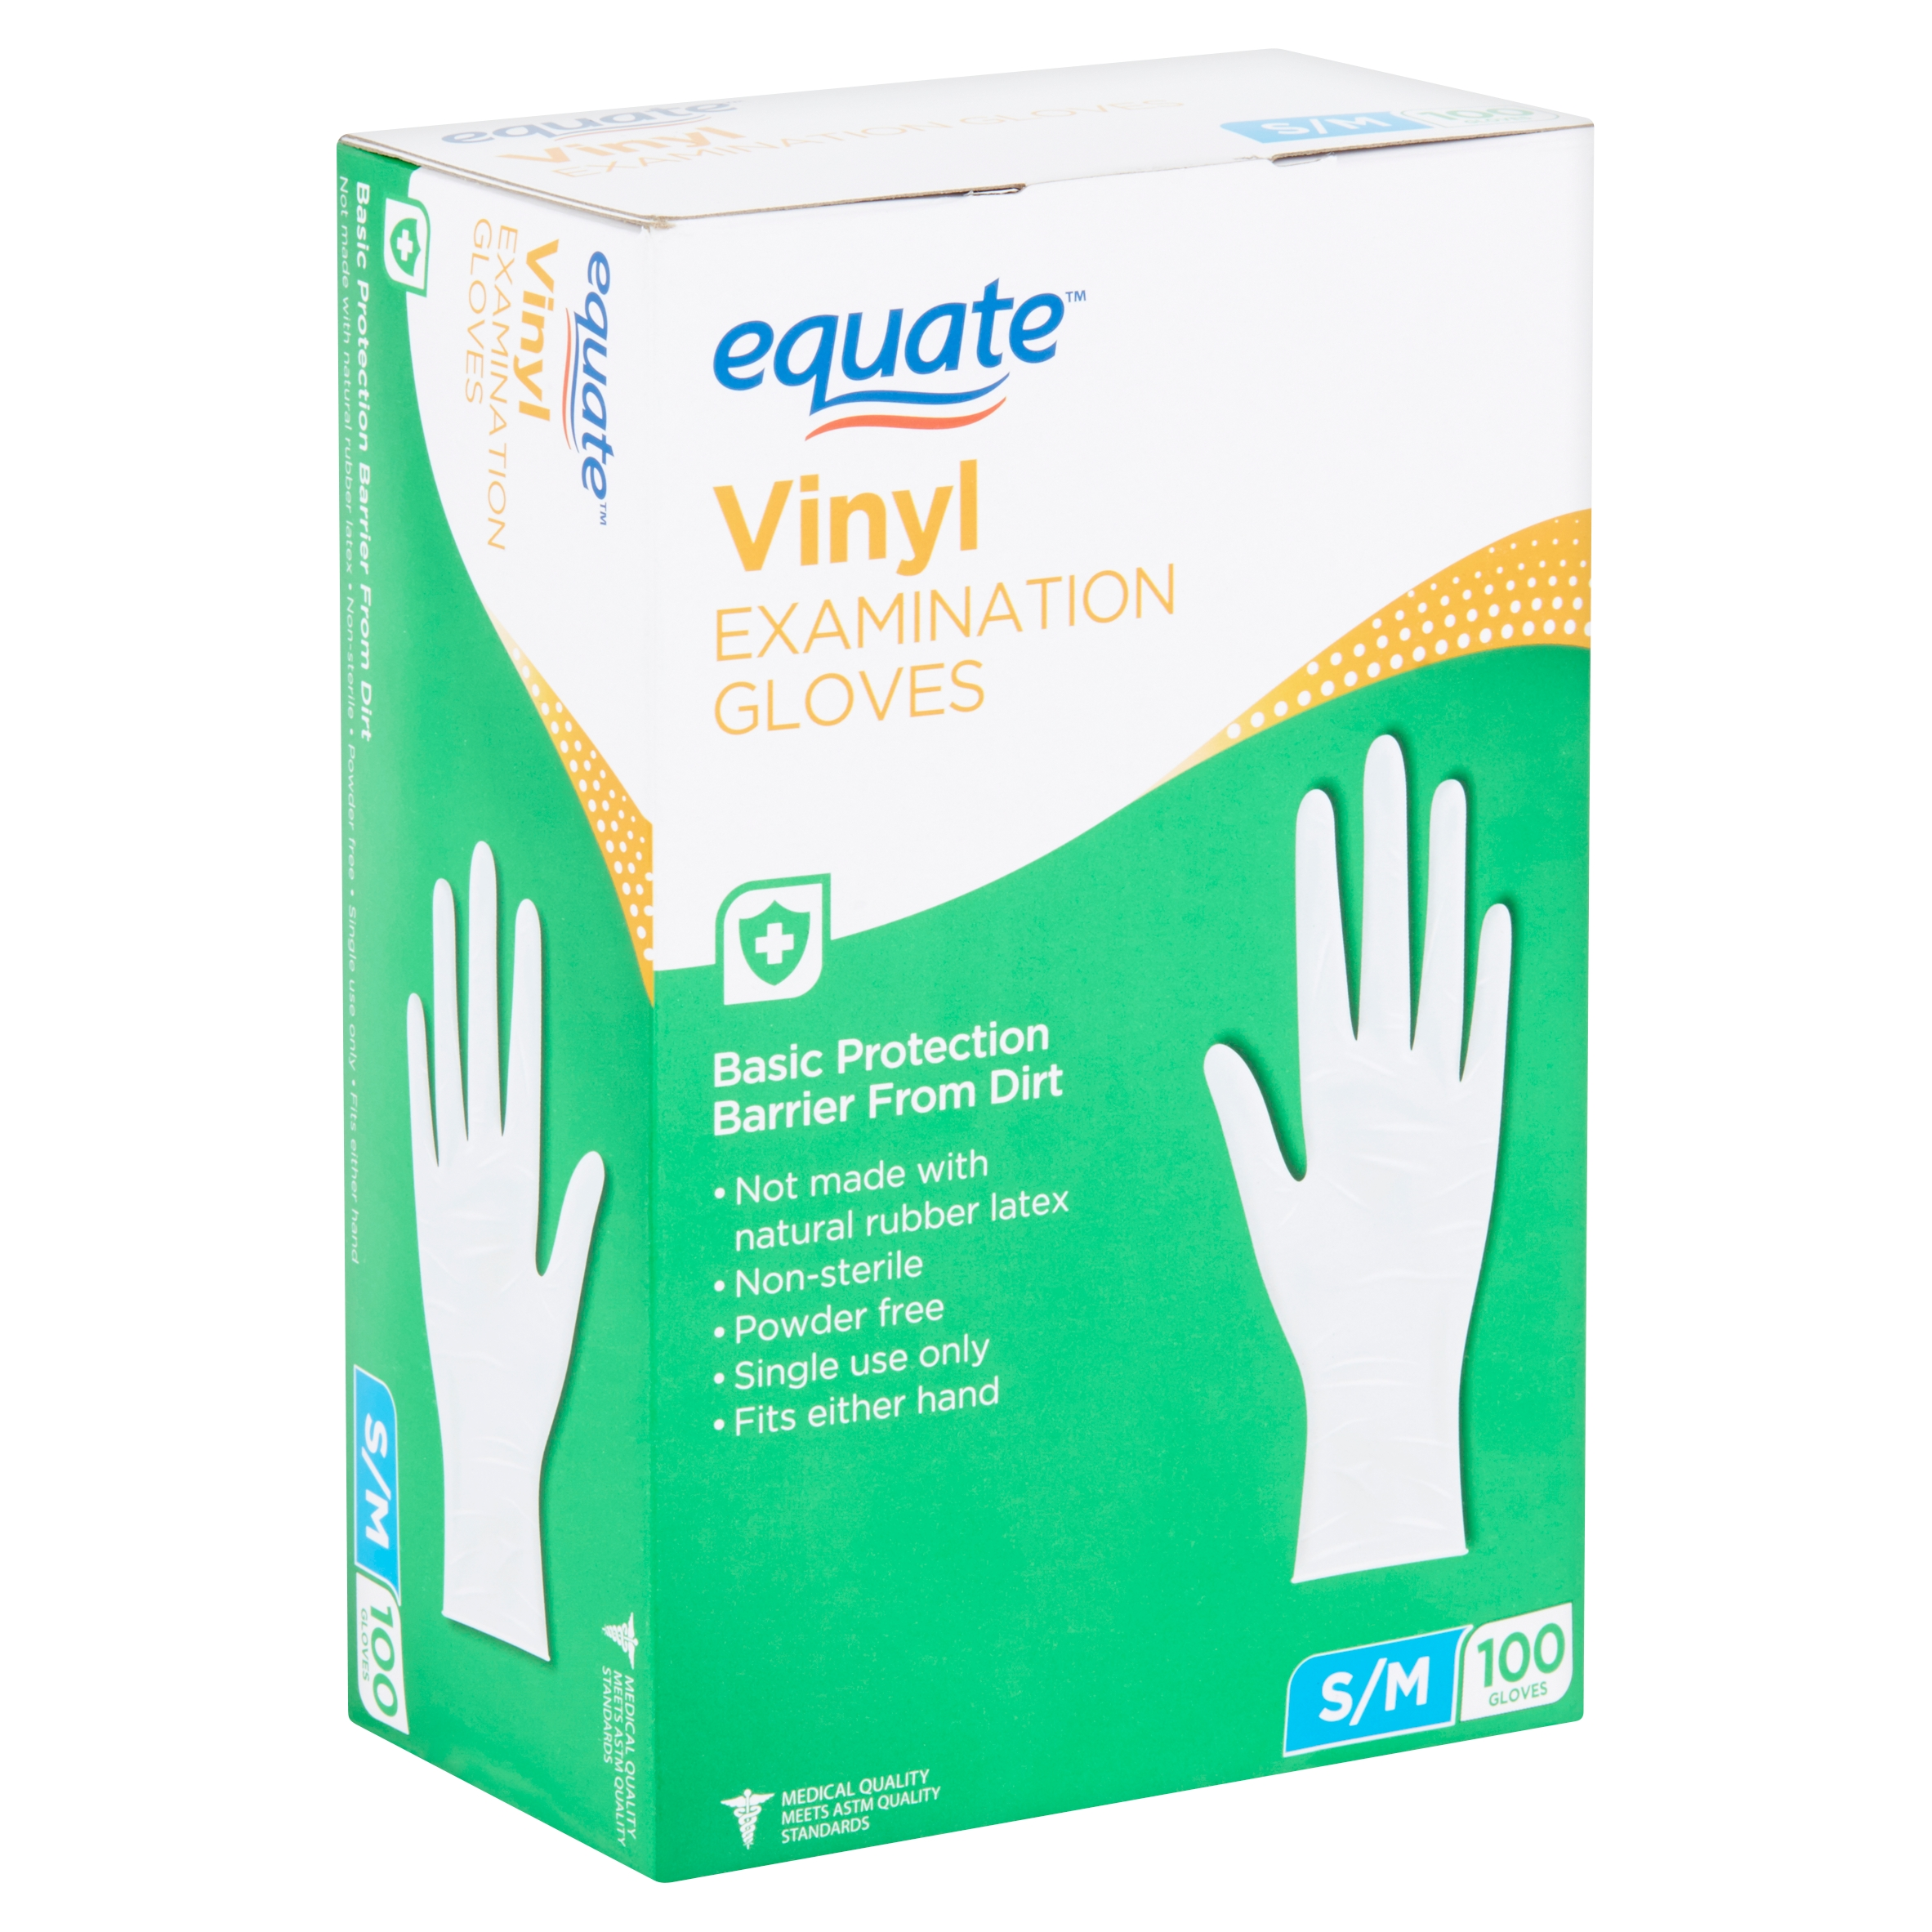 Equate Vinyl Examination Gloves, S/M, 100 count